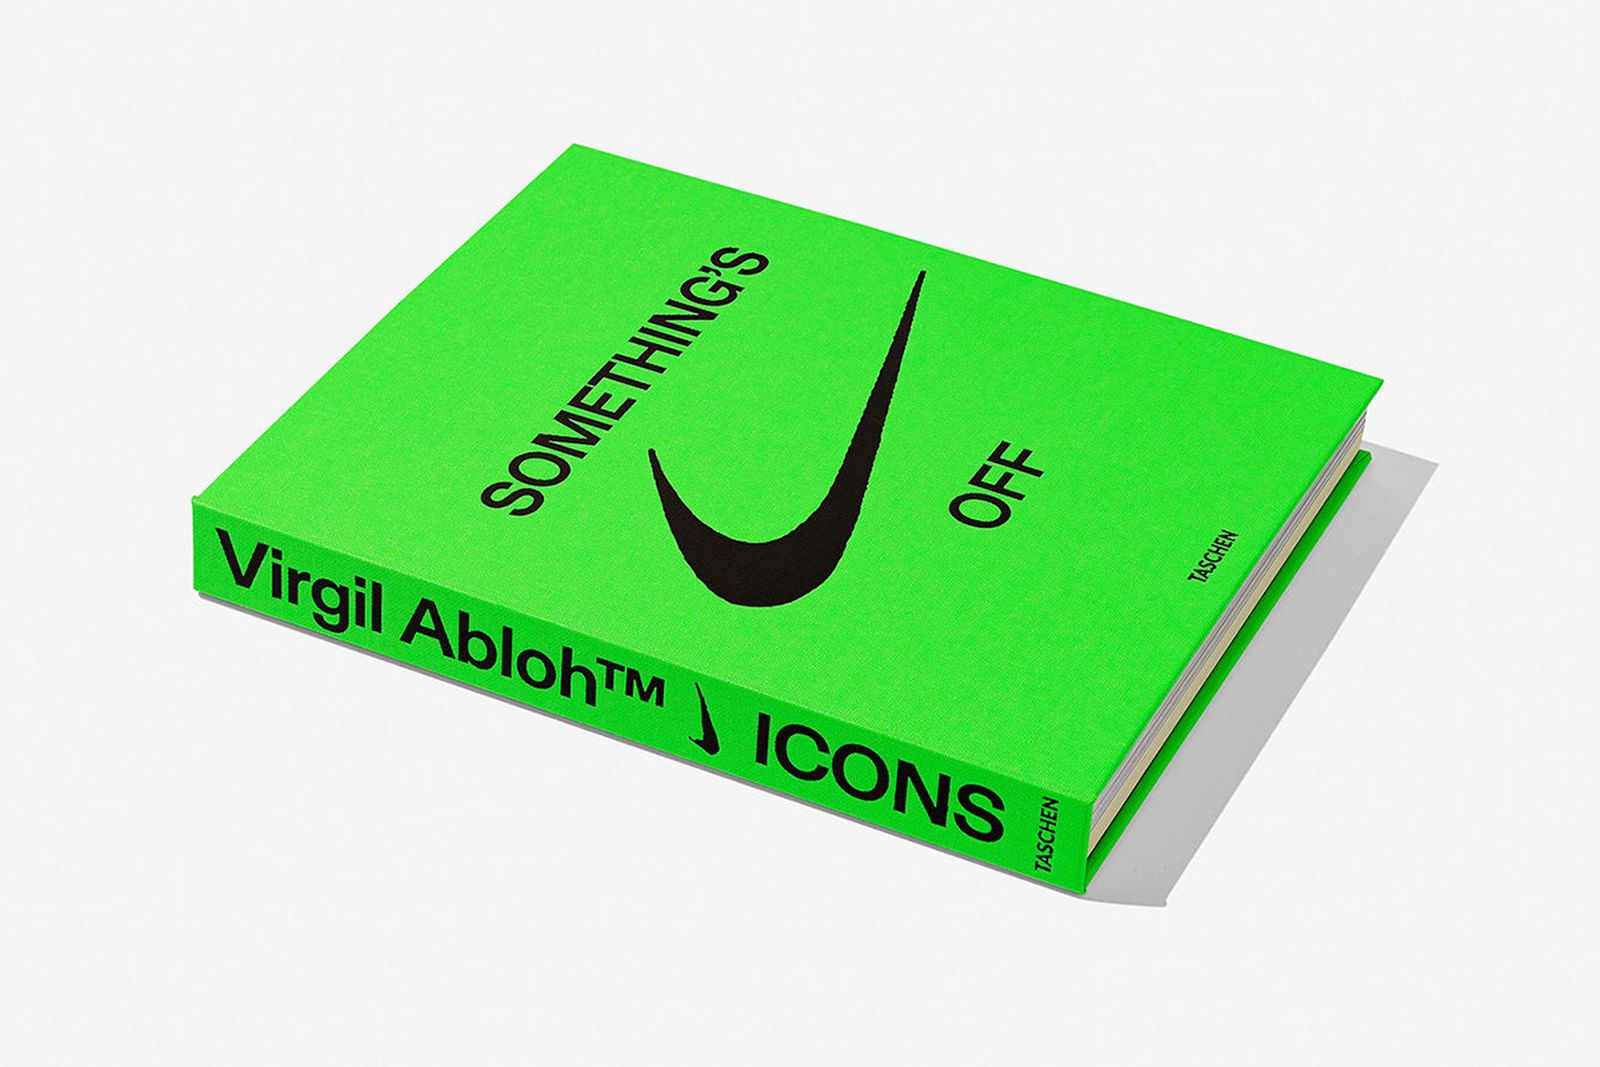 virgil-abloh-nike-book-icons-01